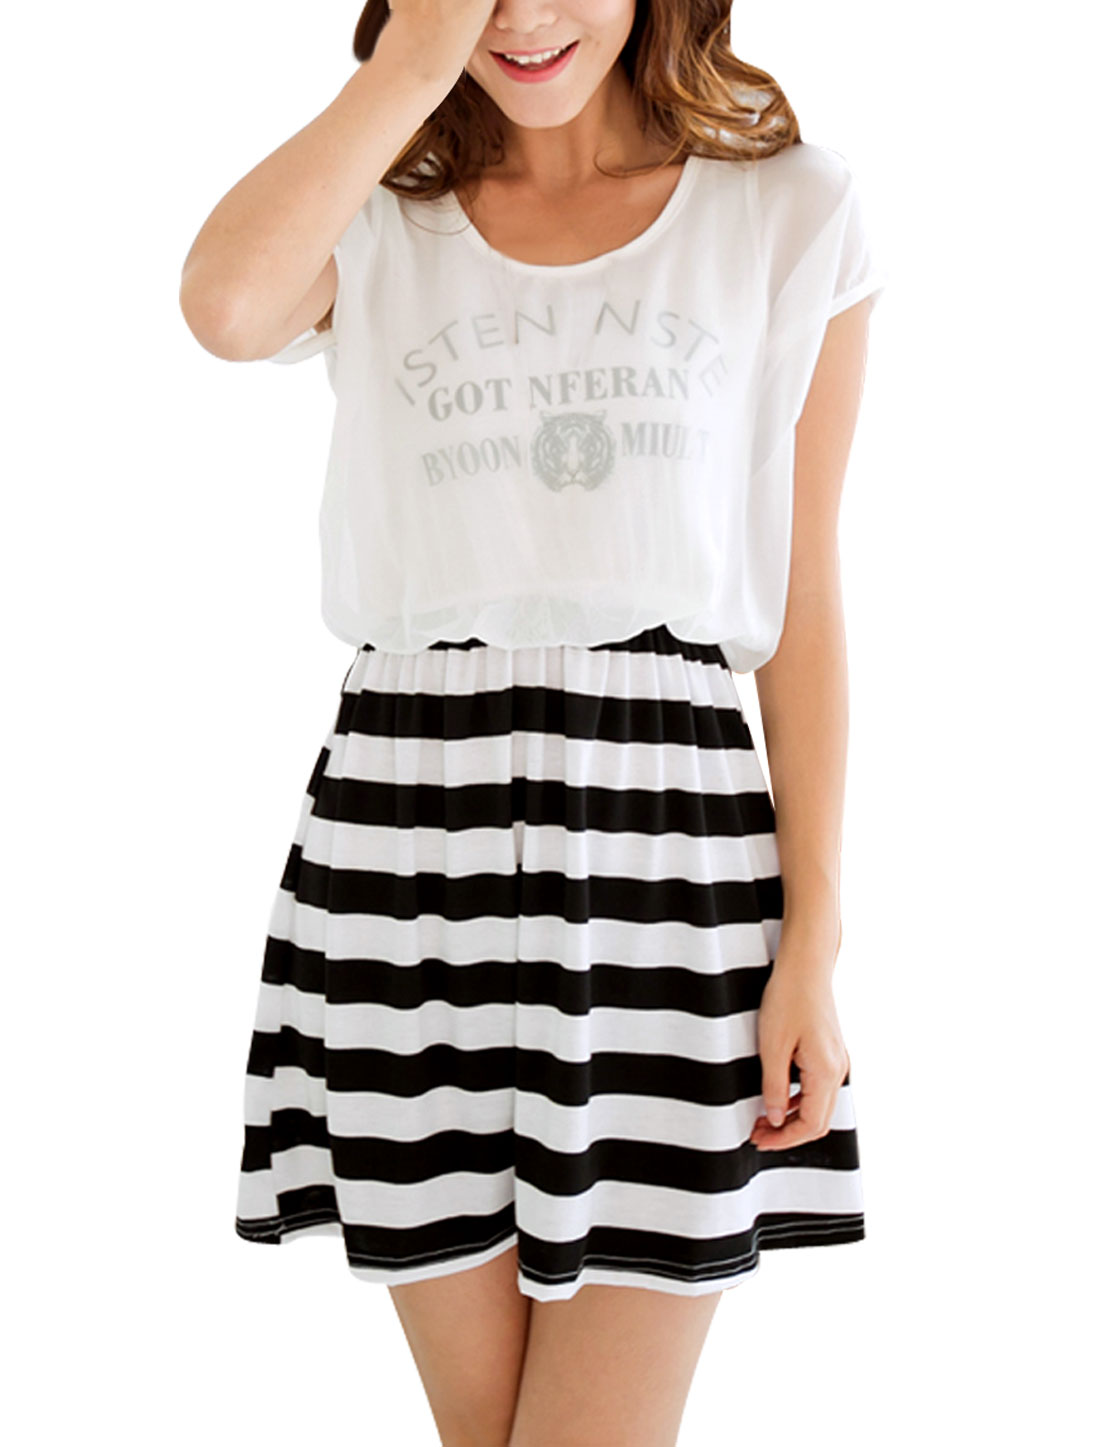 Lady Scoop Neck Stretchy Waist Stripes Pattern Pleated Dress White Black XS